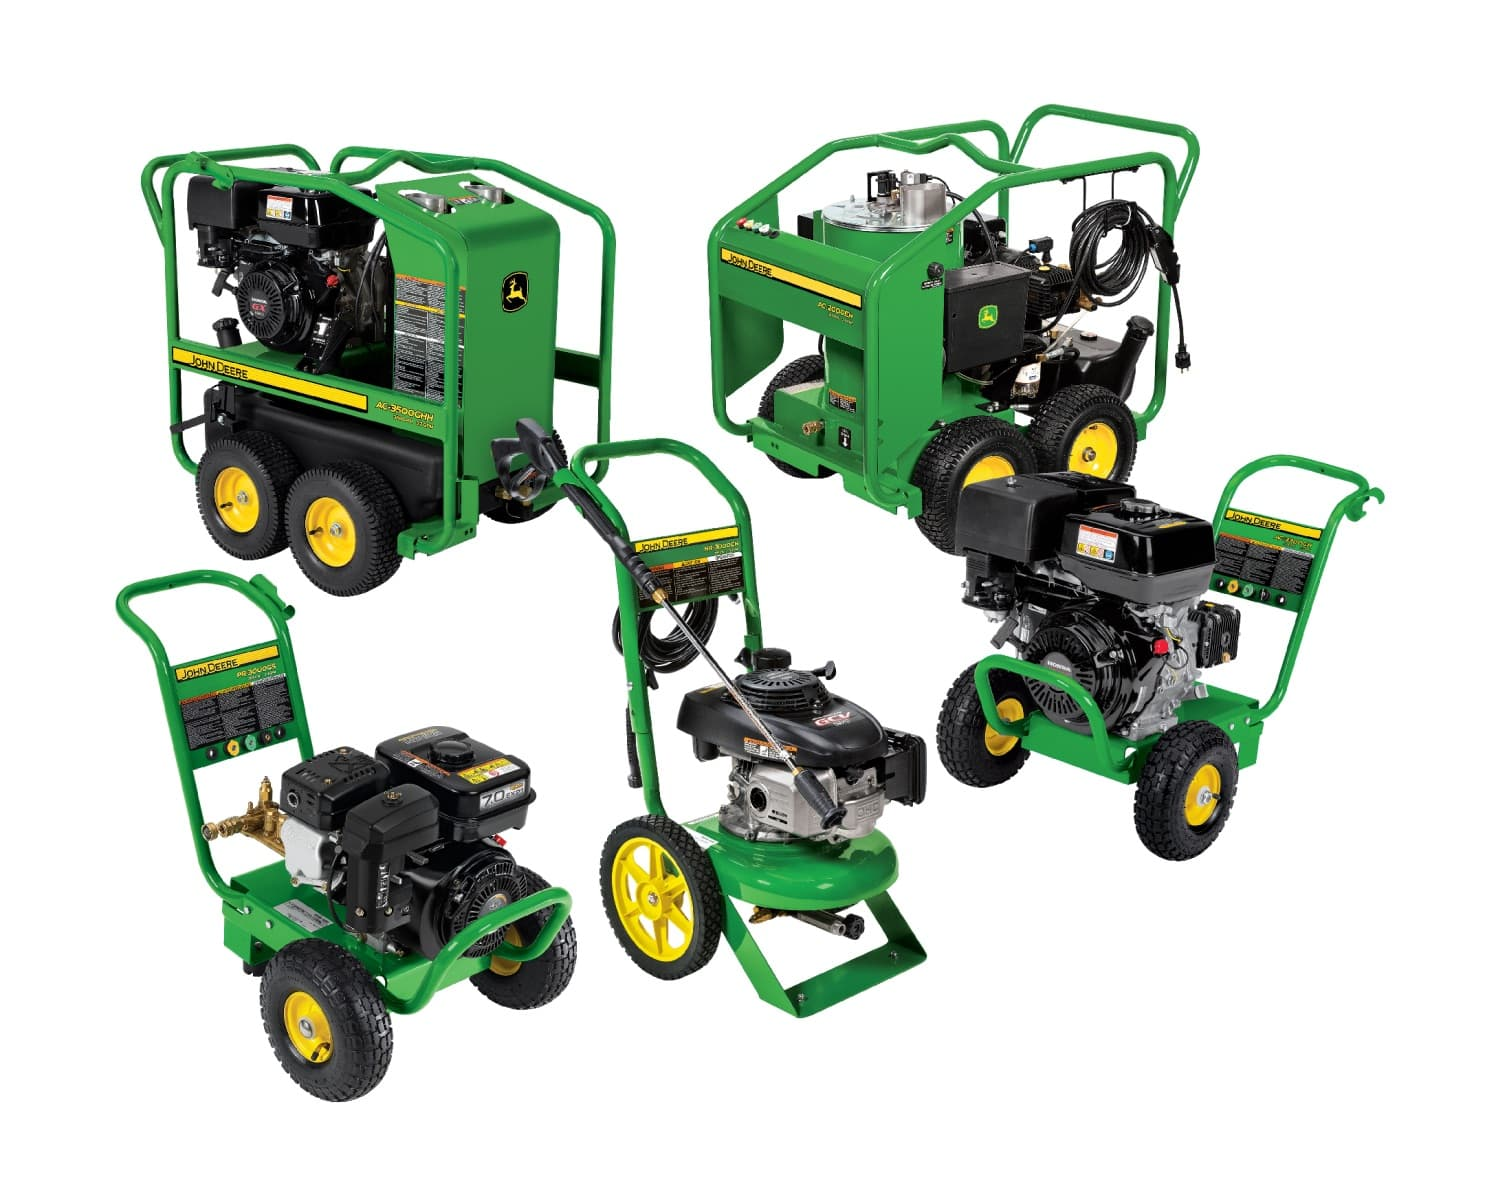 Air Compressors Home Workshop Products John Deere Us >> Home Workshop Trigreen Equipment